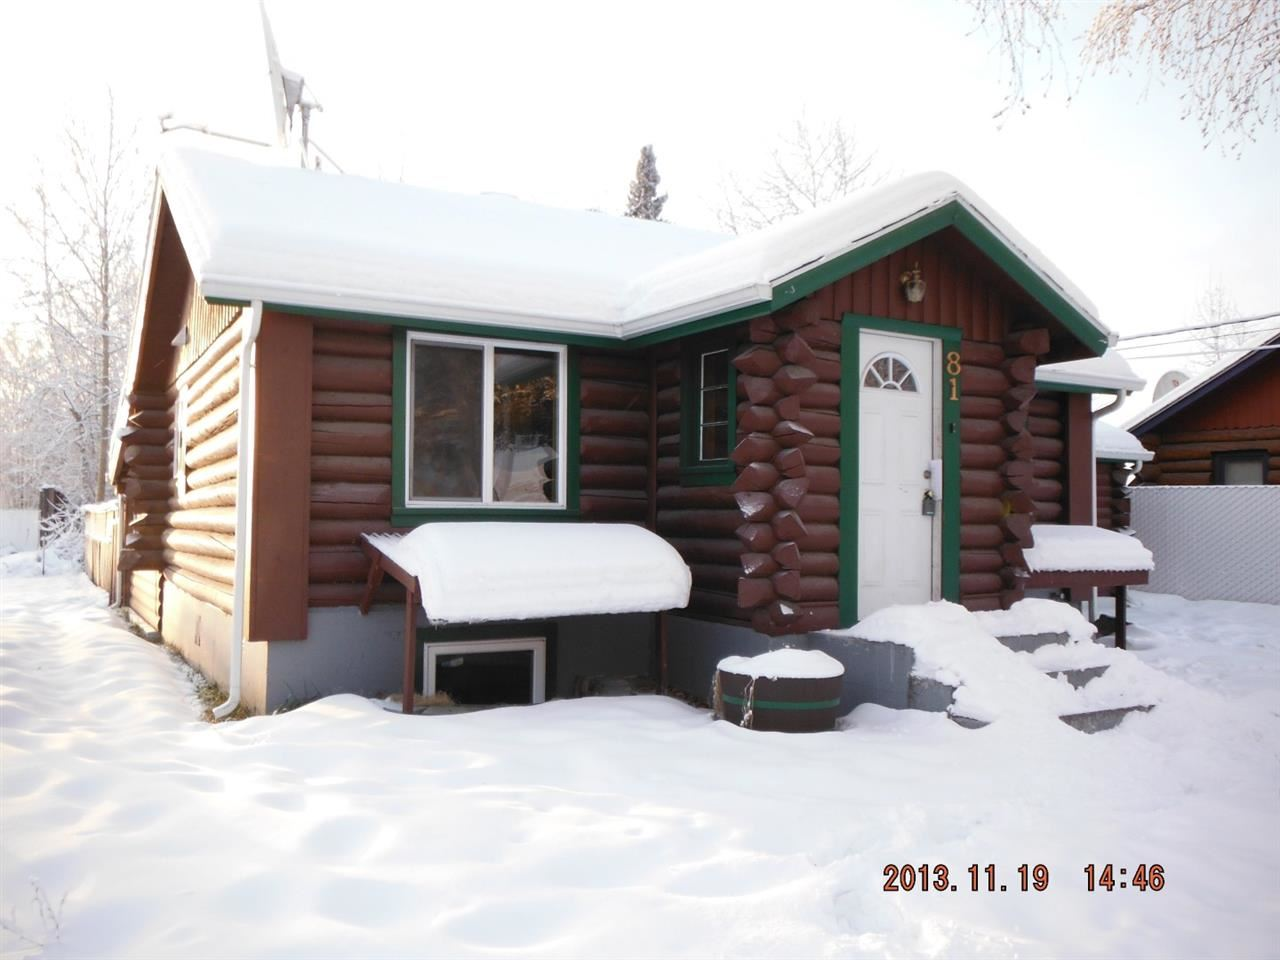 81 Timberland Dr, Fairbanks, AK 99701